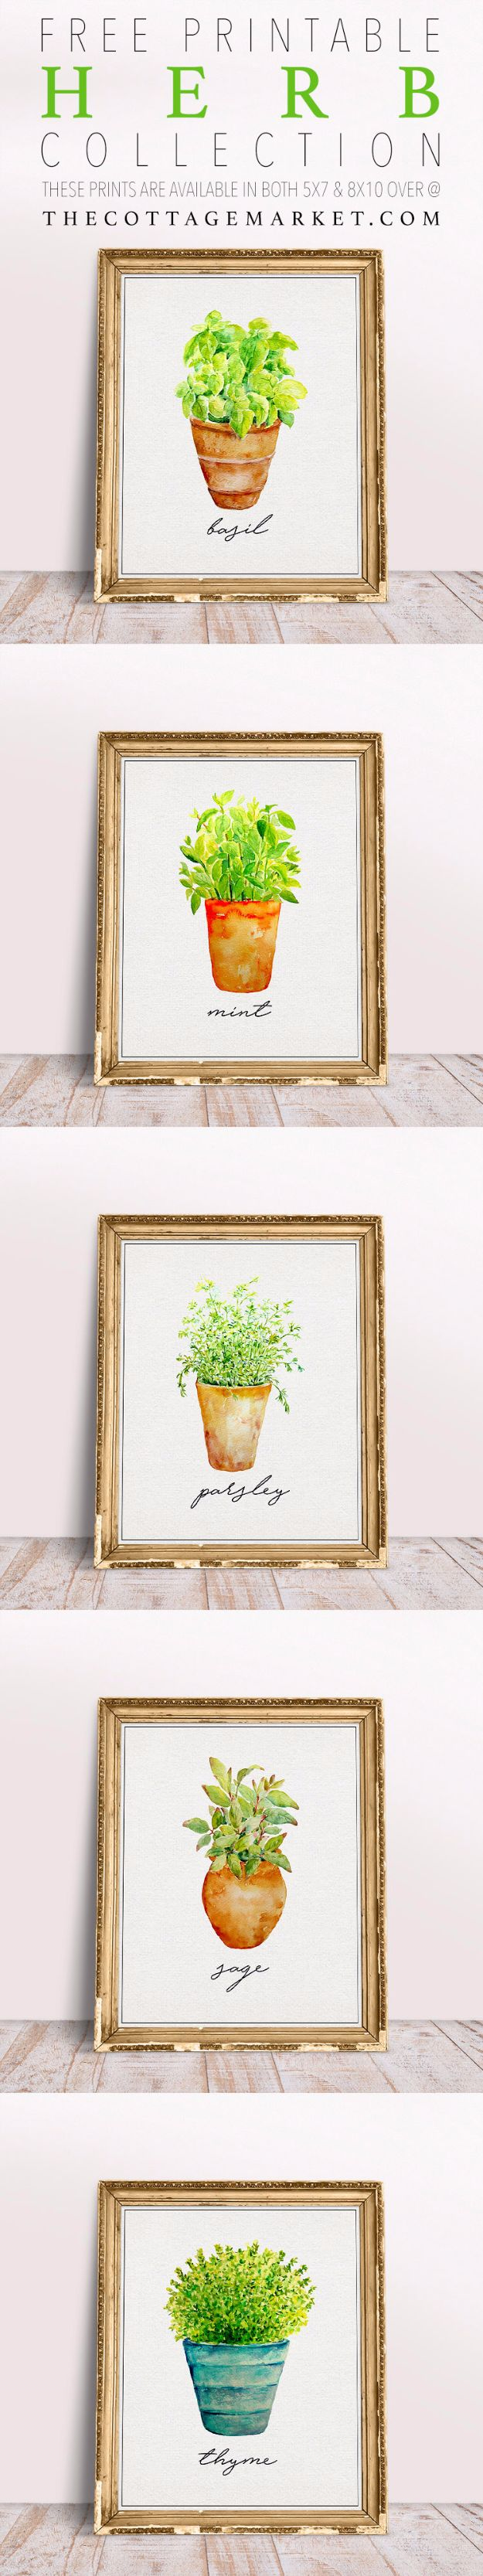 Free Printables For Your Walls - Free Printable Herb Collection - Best Free Prints for Wall Art and Picture to Print for Home and Bedroom Decor - Ideas for the Home, Organization - Quotes for Bedroom and Kitchens, Vintage Bathroom Pictures - Downloadable Printable for Kids - DIY and Crafts by DIY JOY http://diyjoy.com/free-printables-walls